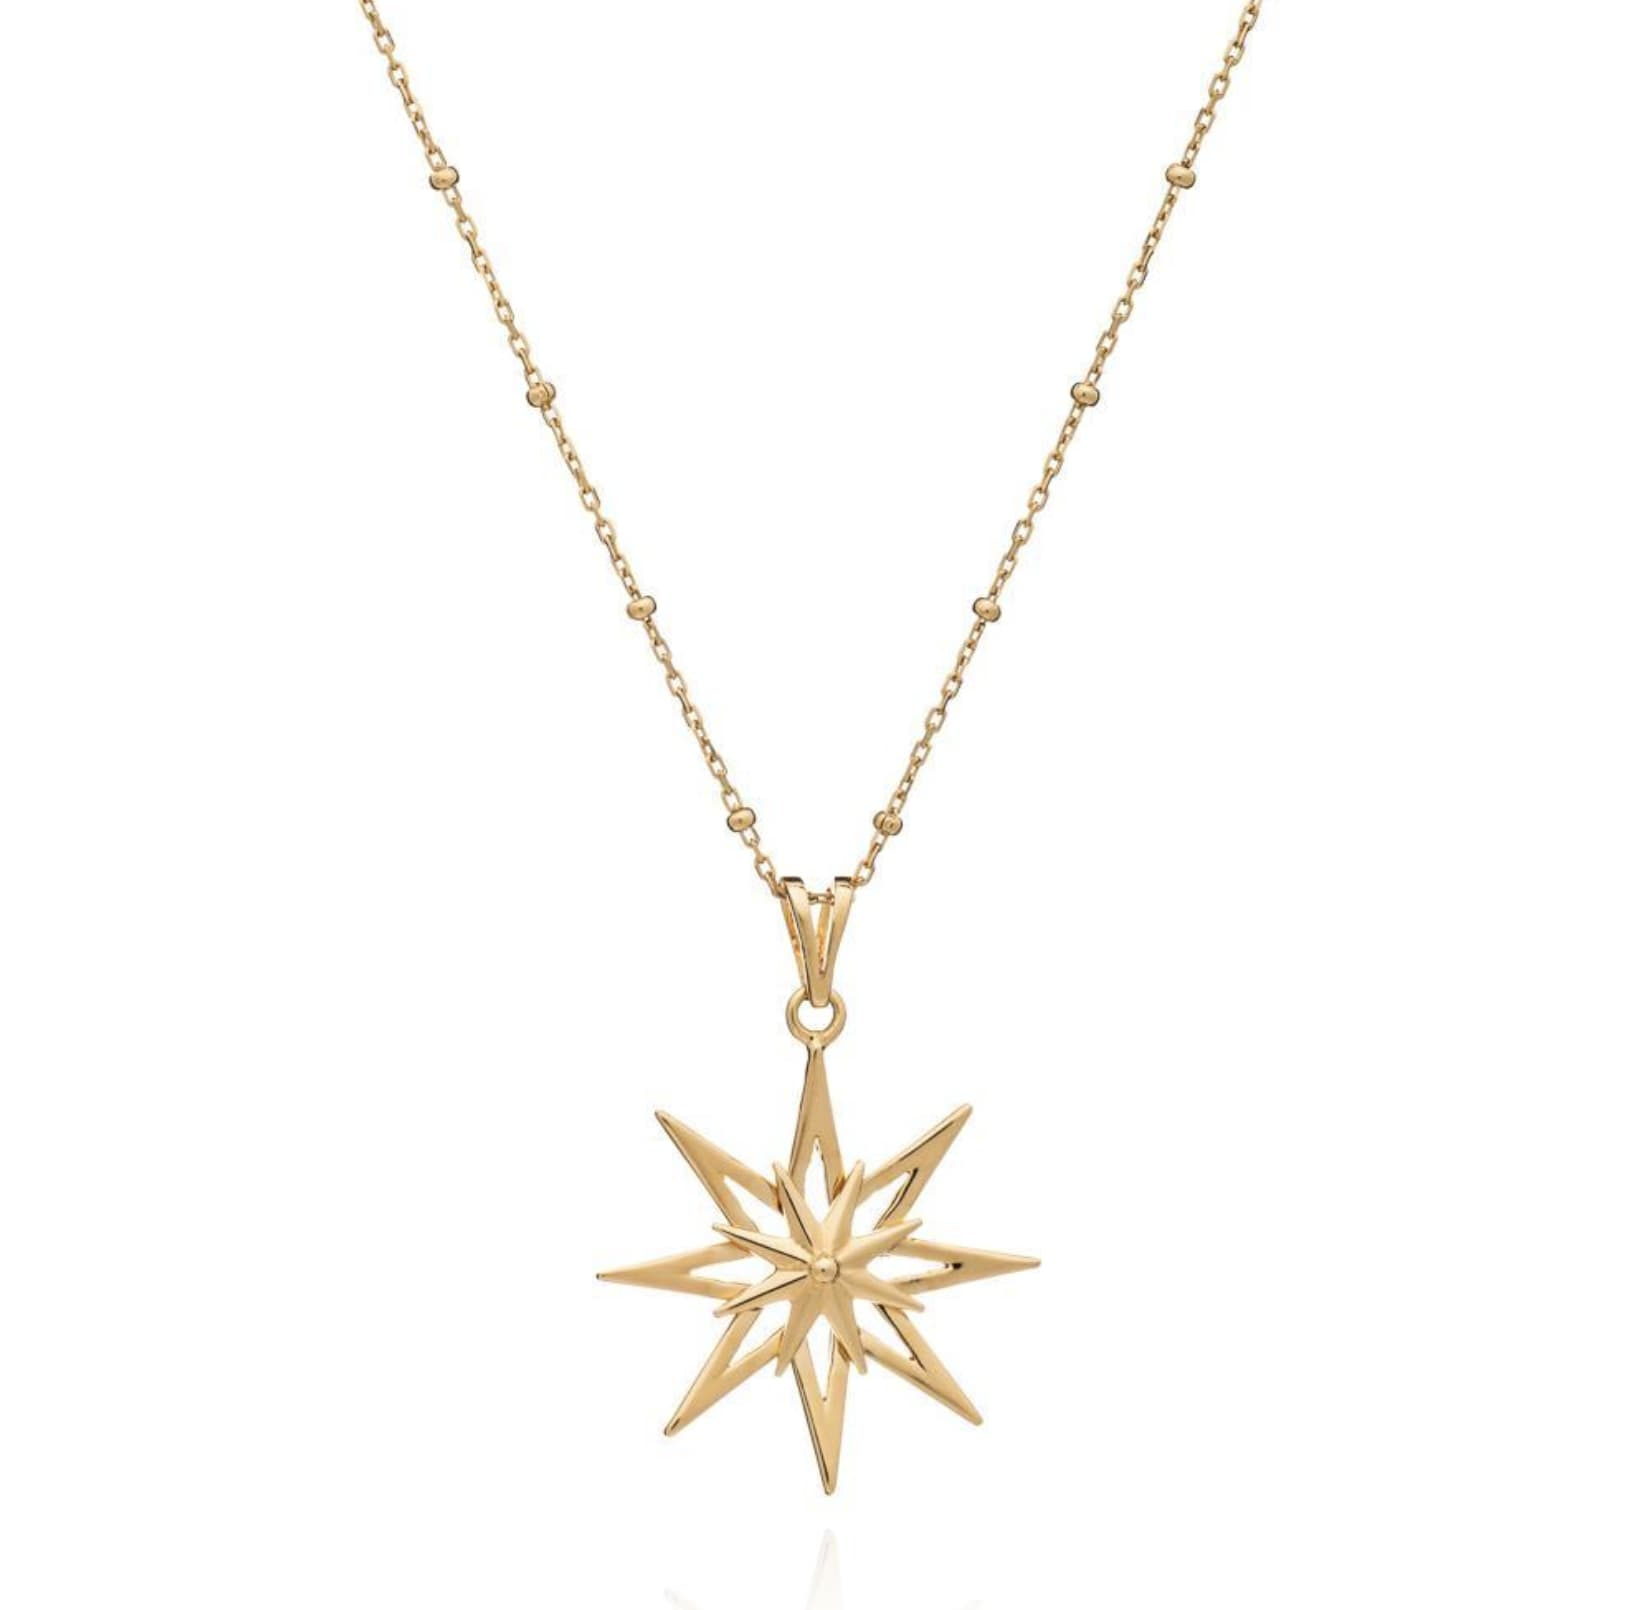 Rachel Jackson Gold Rock Star Necklace